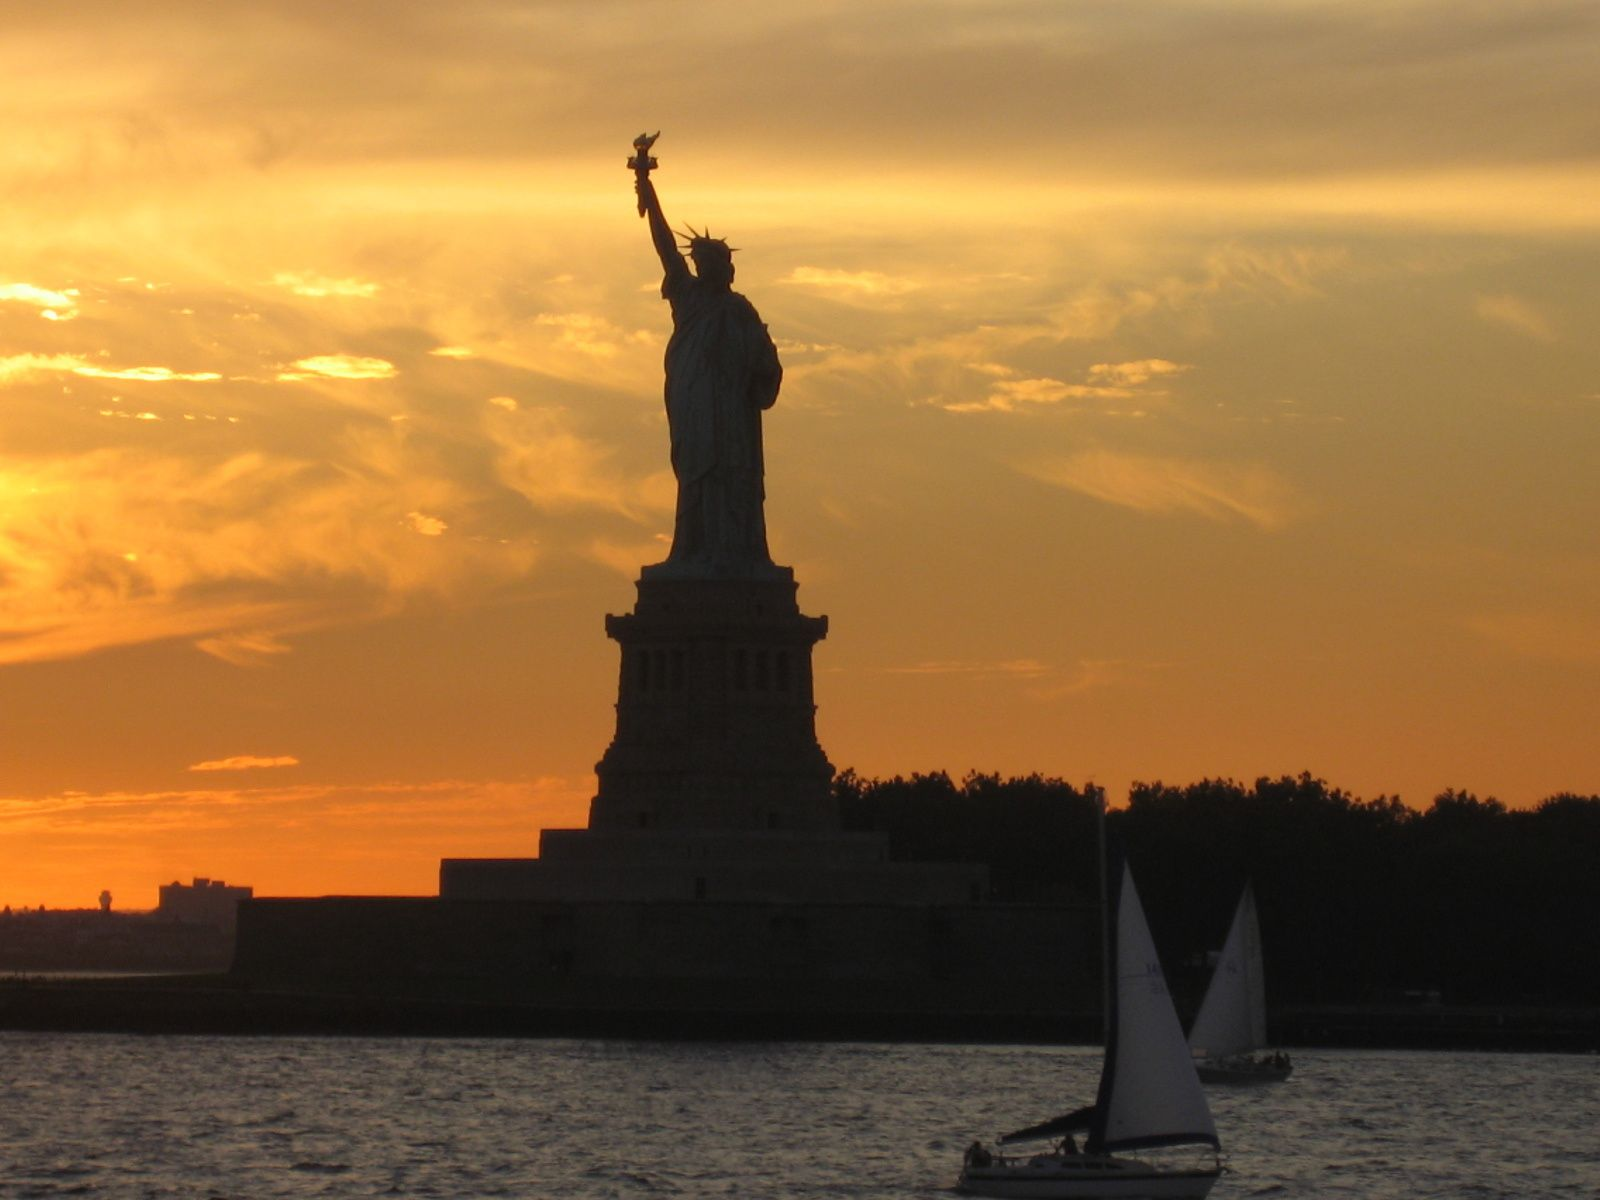 Miss Liberty au soleil couchant